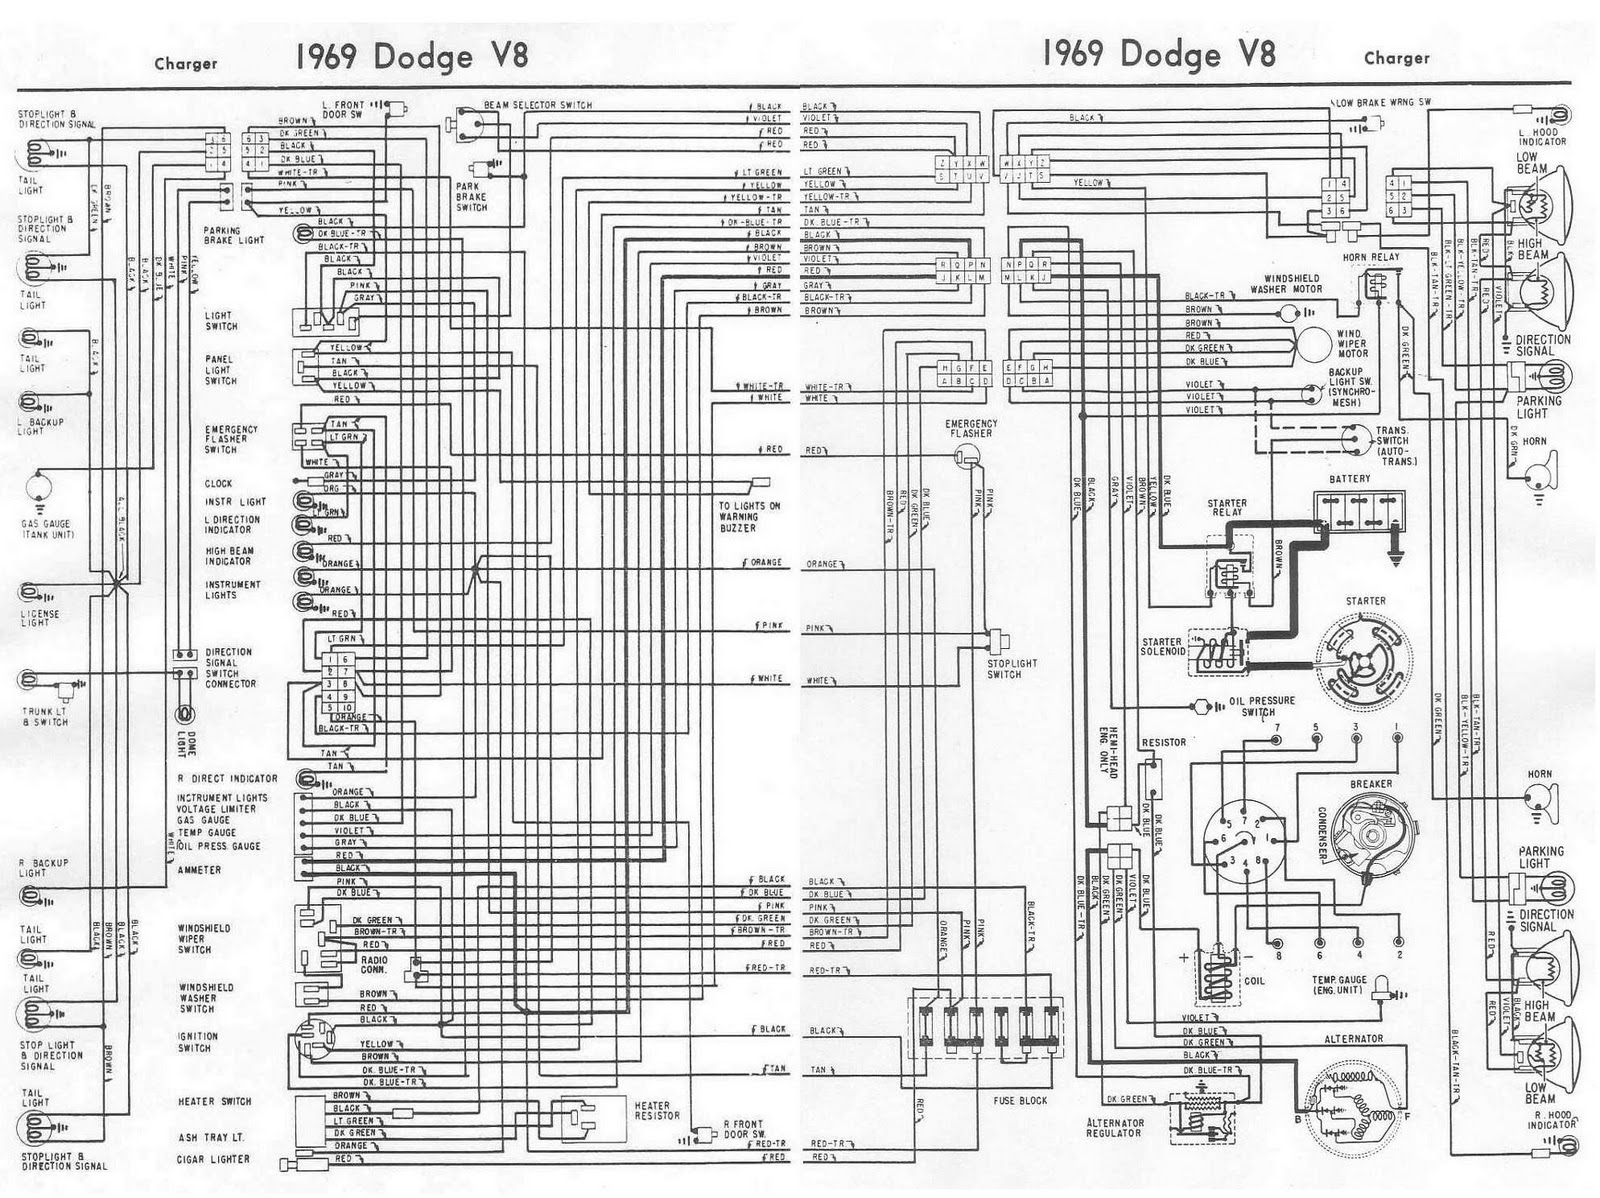 69 Dodge Truck Wiring Diagram Find 1975 Charger 1969 V8 Complete Electrical All About Rh Diagramonwiring Blogspot Com 1985 1964